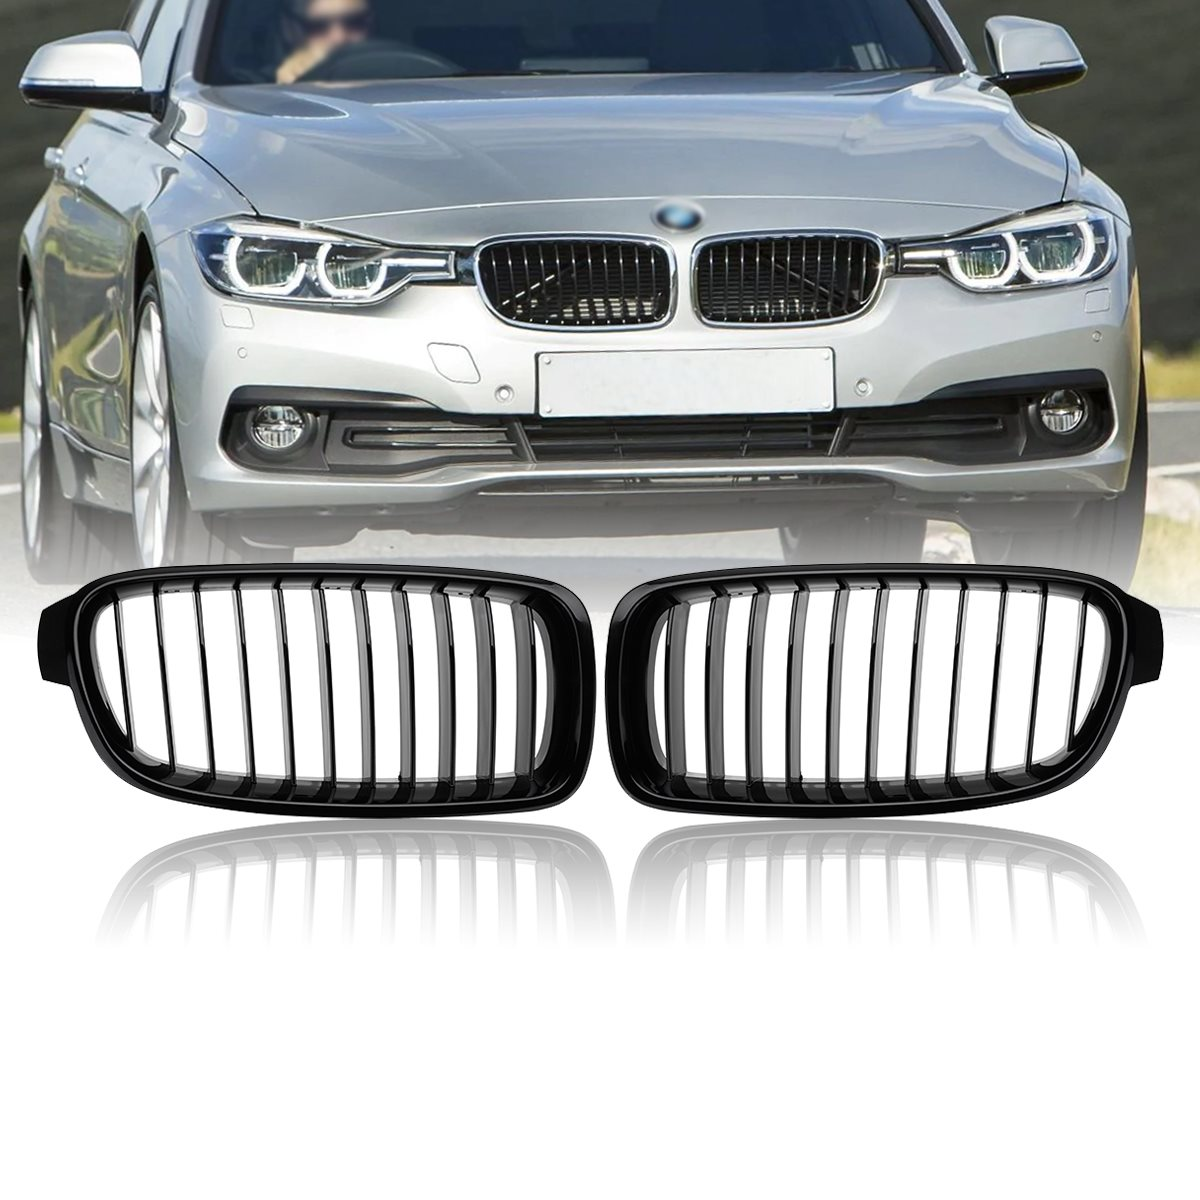 2Pcs Gloss Black Car Front Kidney Grilles For BMW F30 F31 3 Series Saloon 2012 2013 2014 2015 Racing Grills 1 pair gloss black front kidney grilles grill car styling racing grills replacement grilles for bmw f30 f31 f35 320i 2012